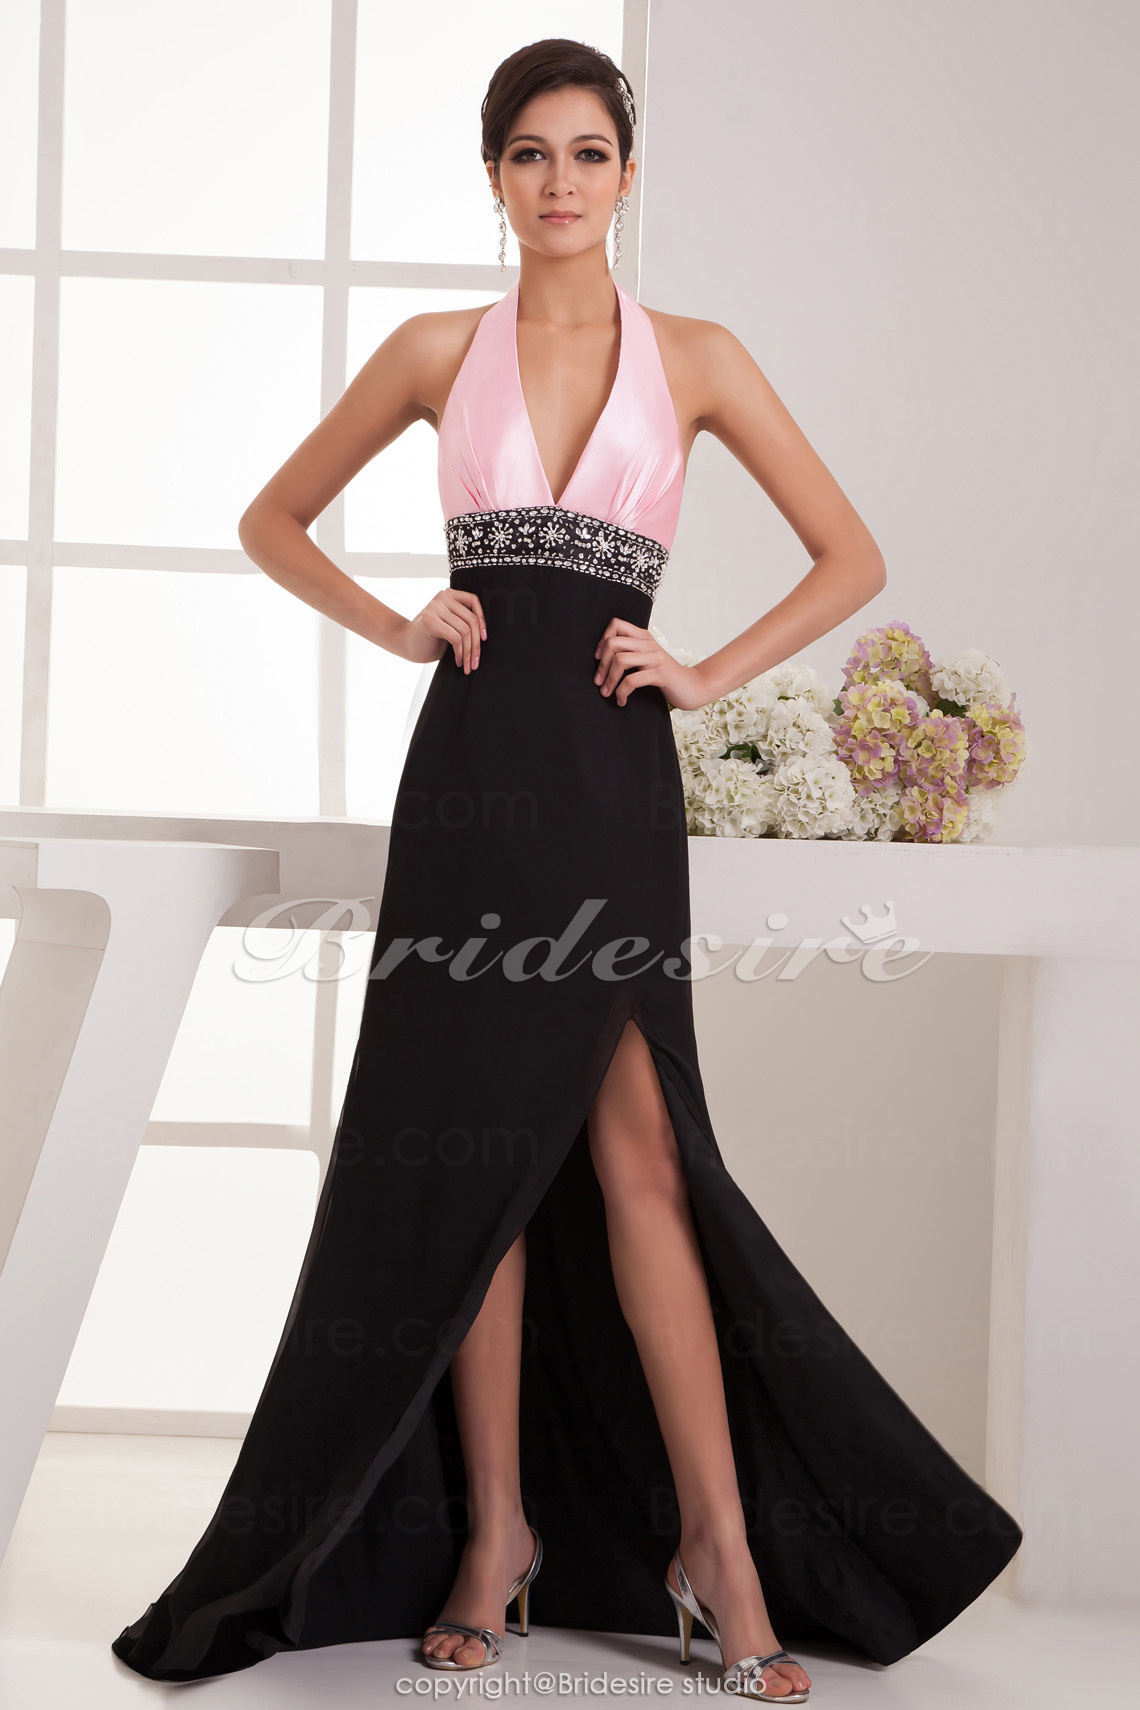 A-line Halter Floor-length Court Train Sleeveless Satin Dress